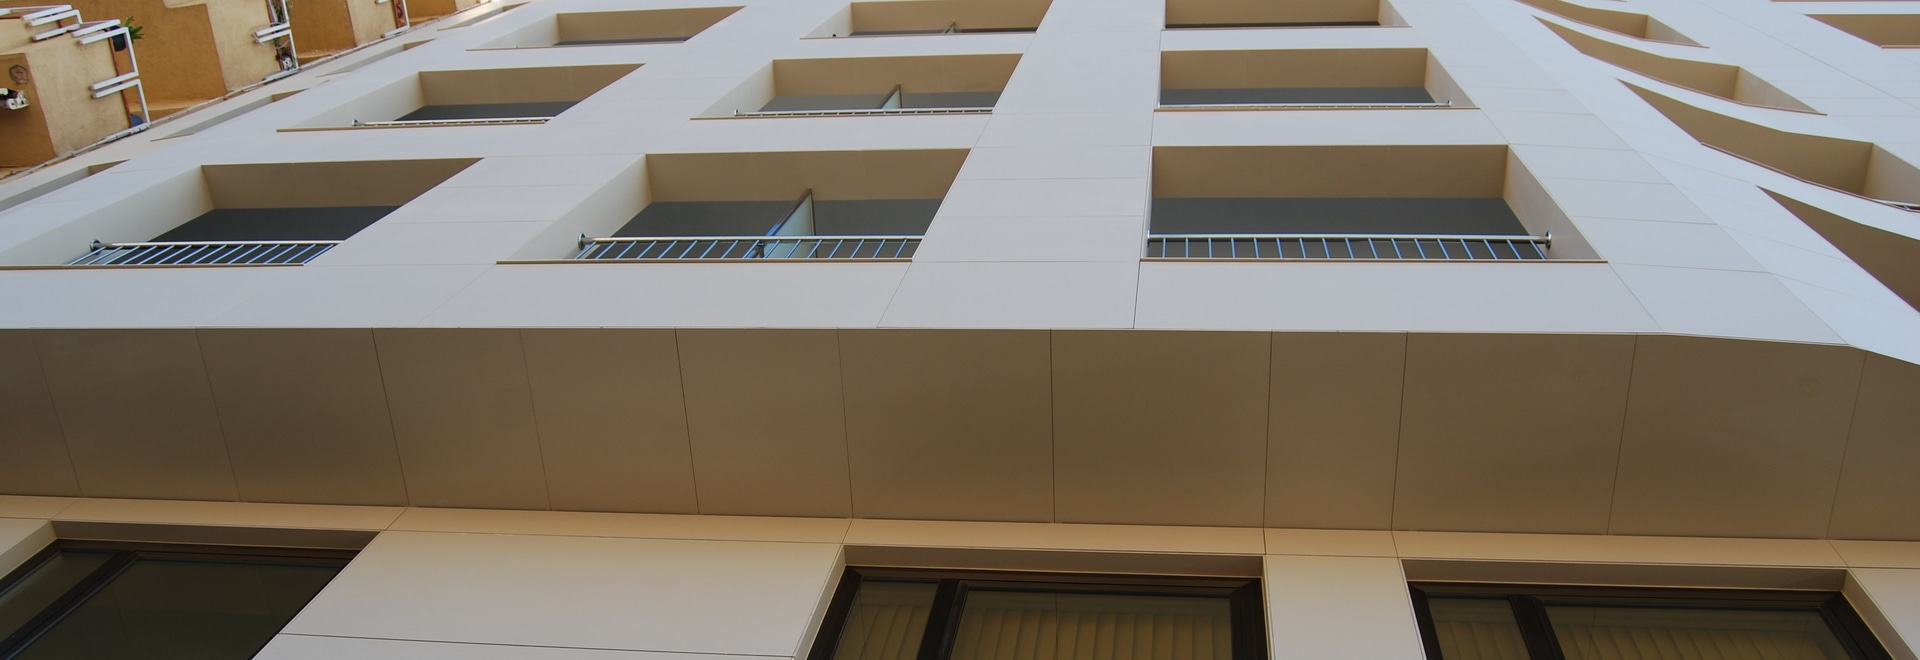 Savings thanks to ventilated facades